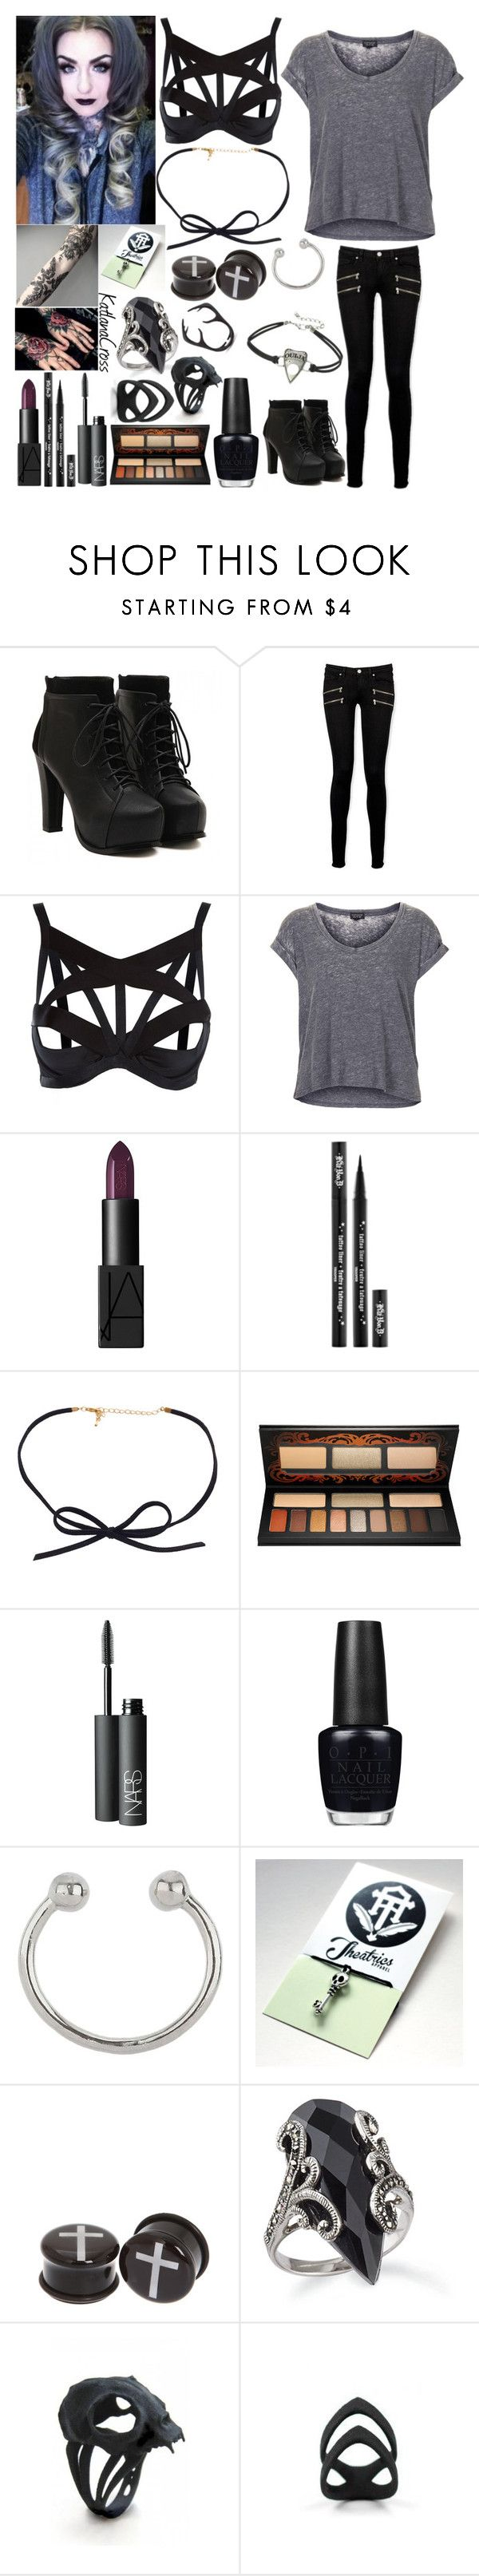 """Tattoo convention with Ryan Ashley Malarkey"" by katlanacross ❤ liked on Polyvore featuring Paige Denim, Agent Provocateur, Topshop, NARS Cosmetics, Kat Von D, OPI, Miss Selfridge, The Rogue + The Wolf, contestentry and RyanAshleyMalarkey"